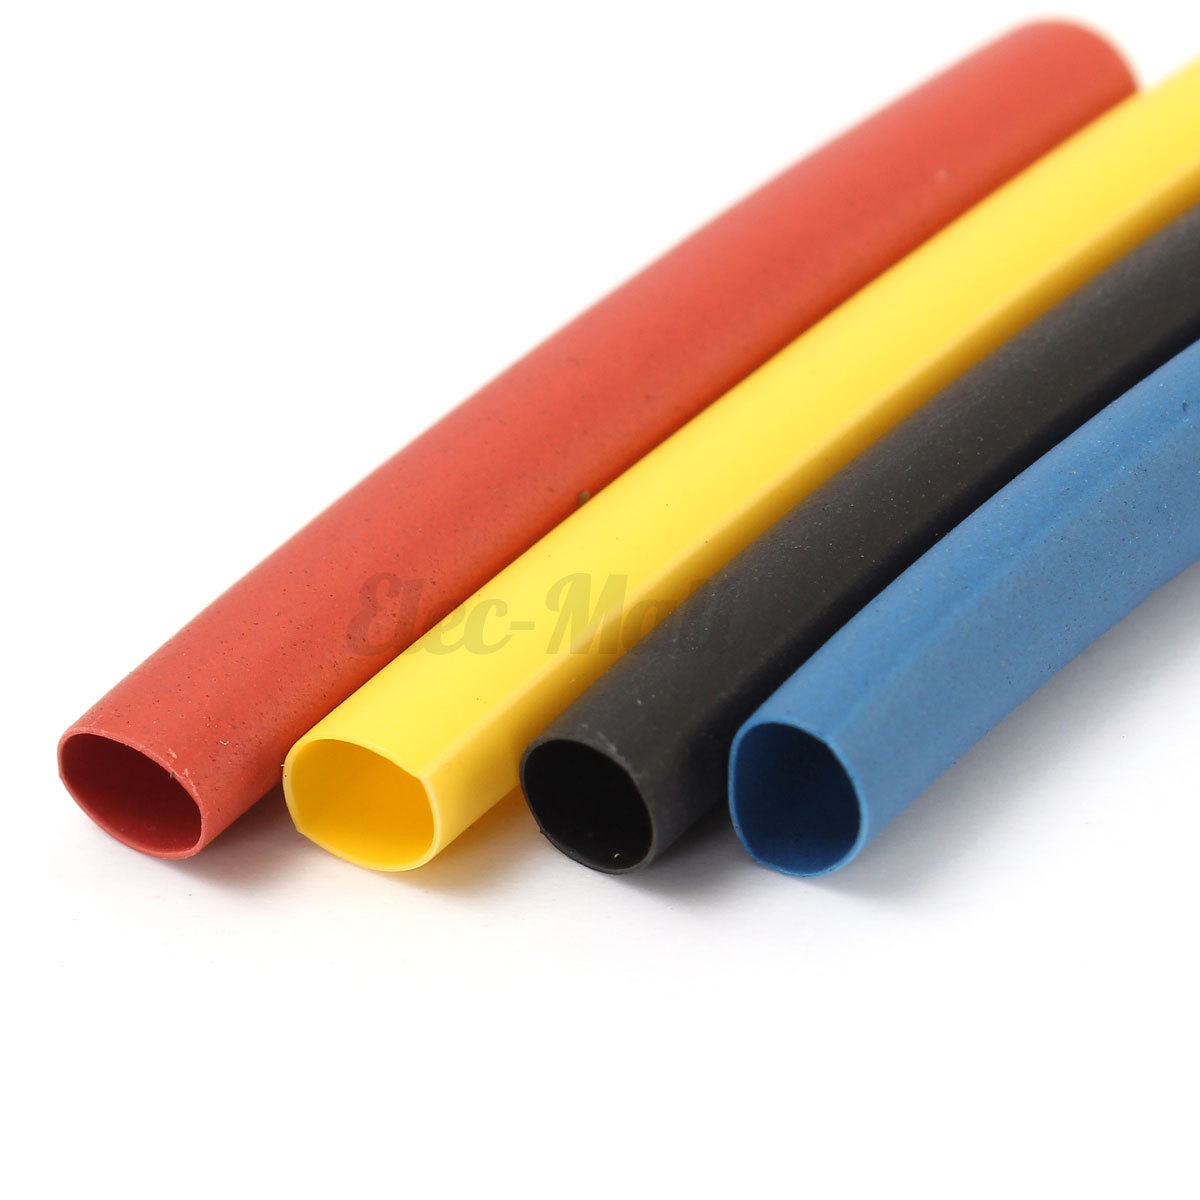 Pcs polyolefin heat shrink tube sleeving wire cable